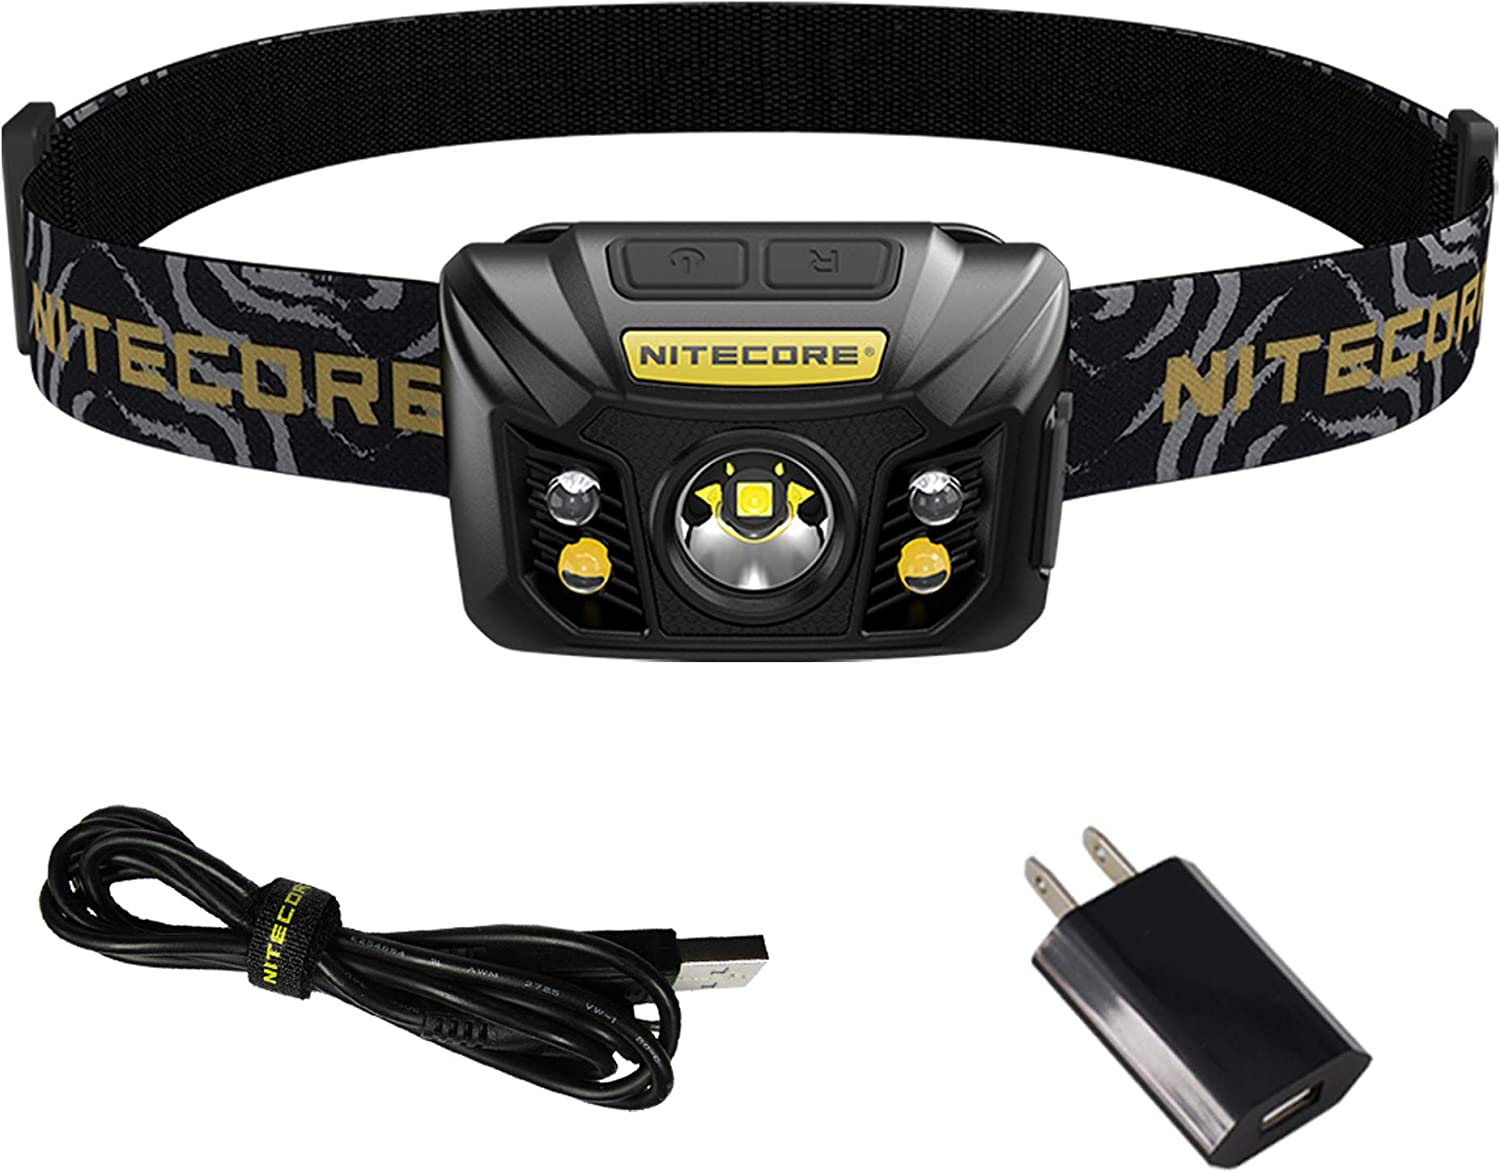 Nitecore LED Rechargeable Headlamp